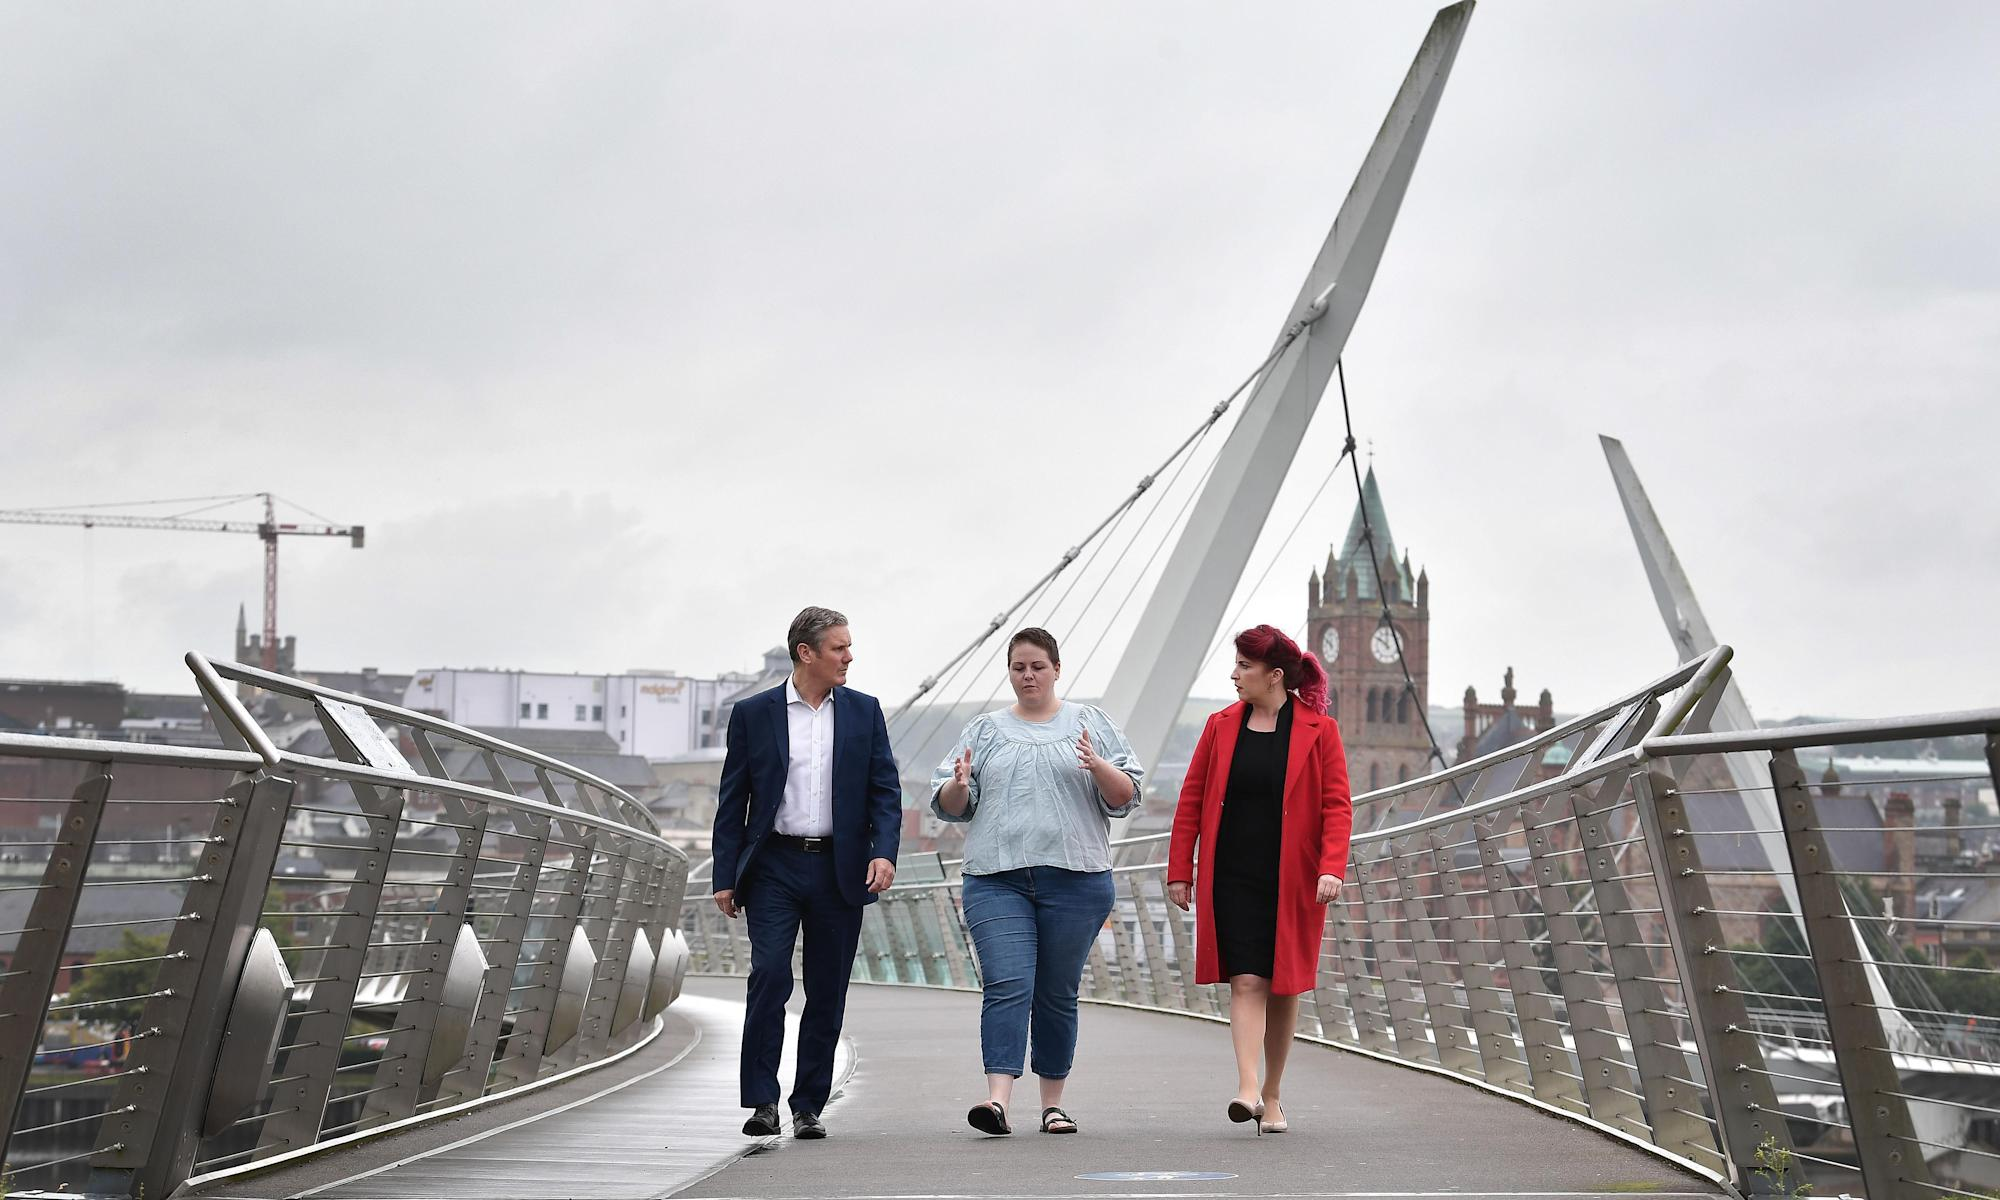 Post-Brexit situation in Northern Ireland is fragile, says Starmer